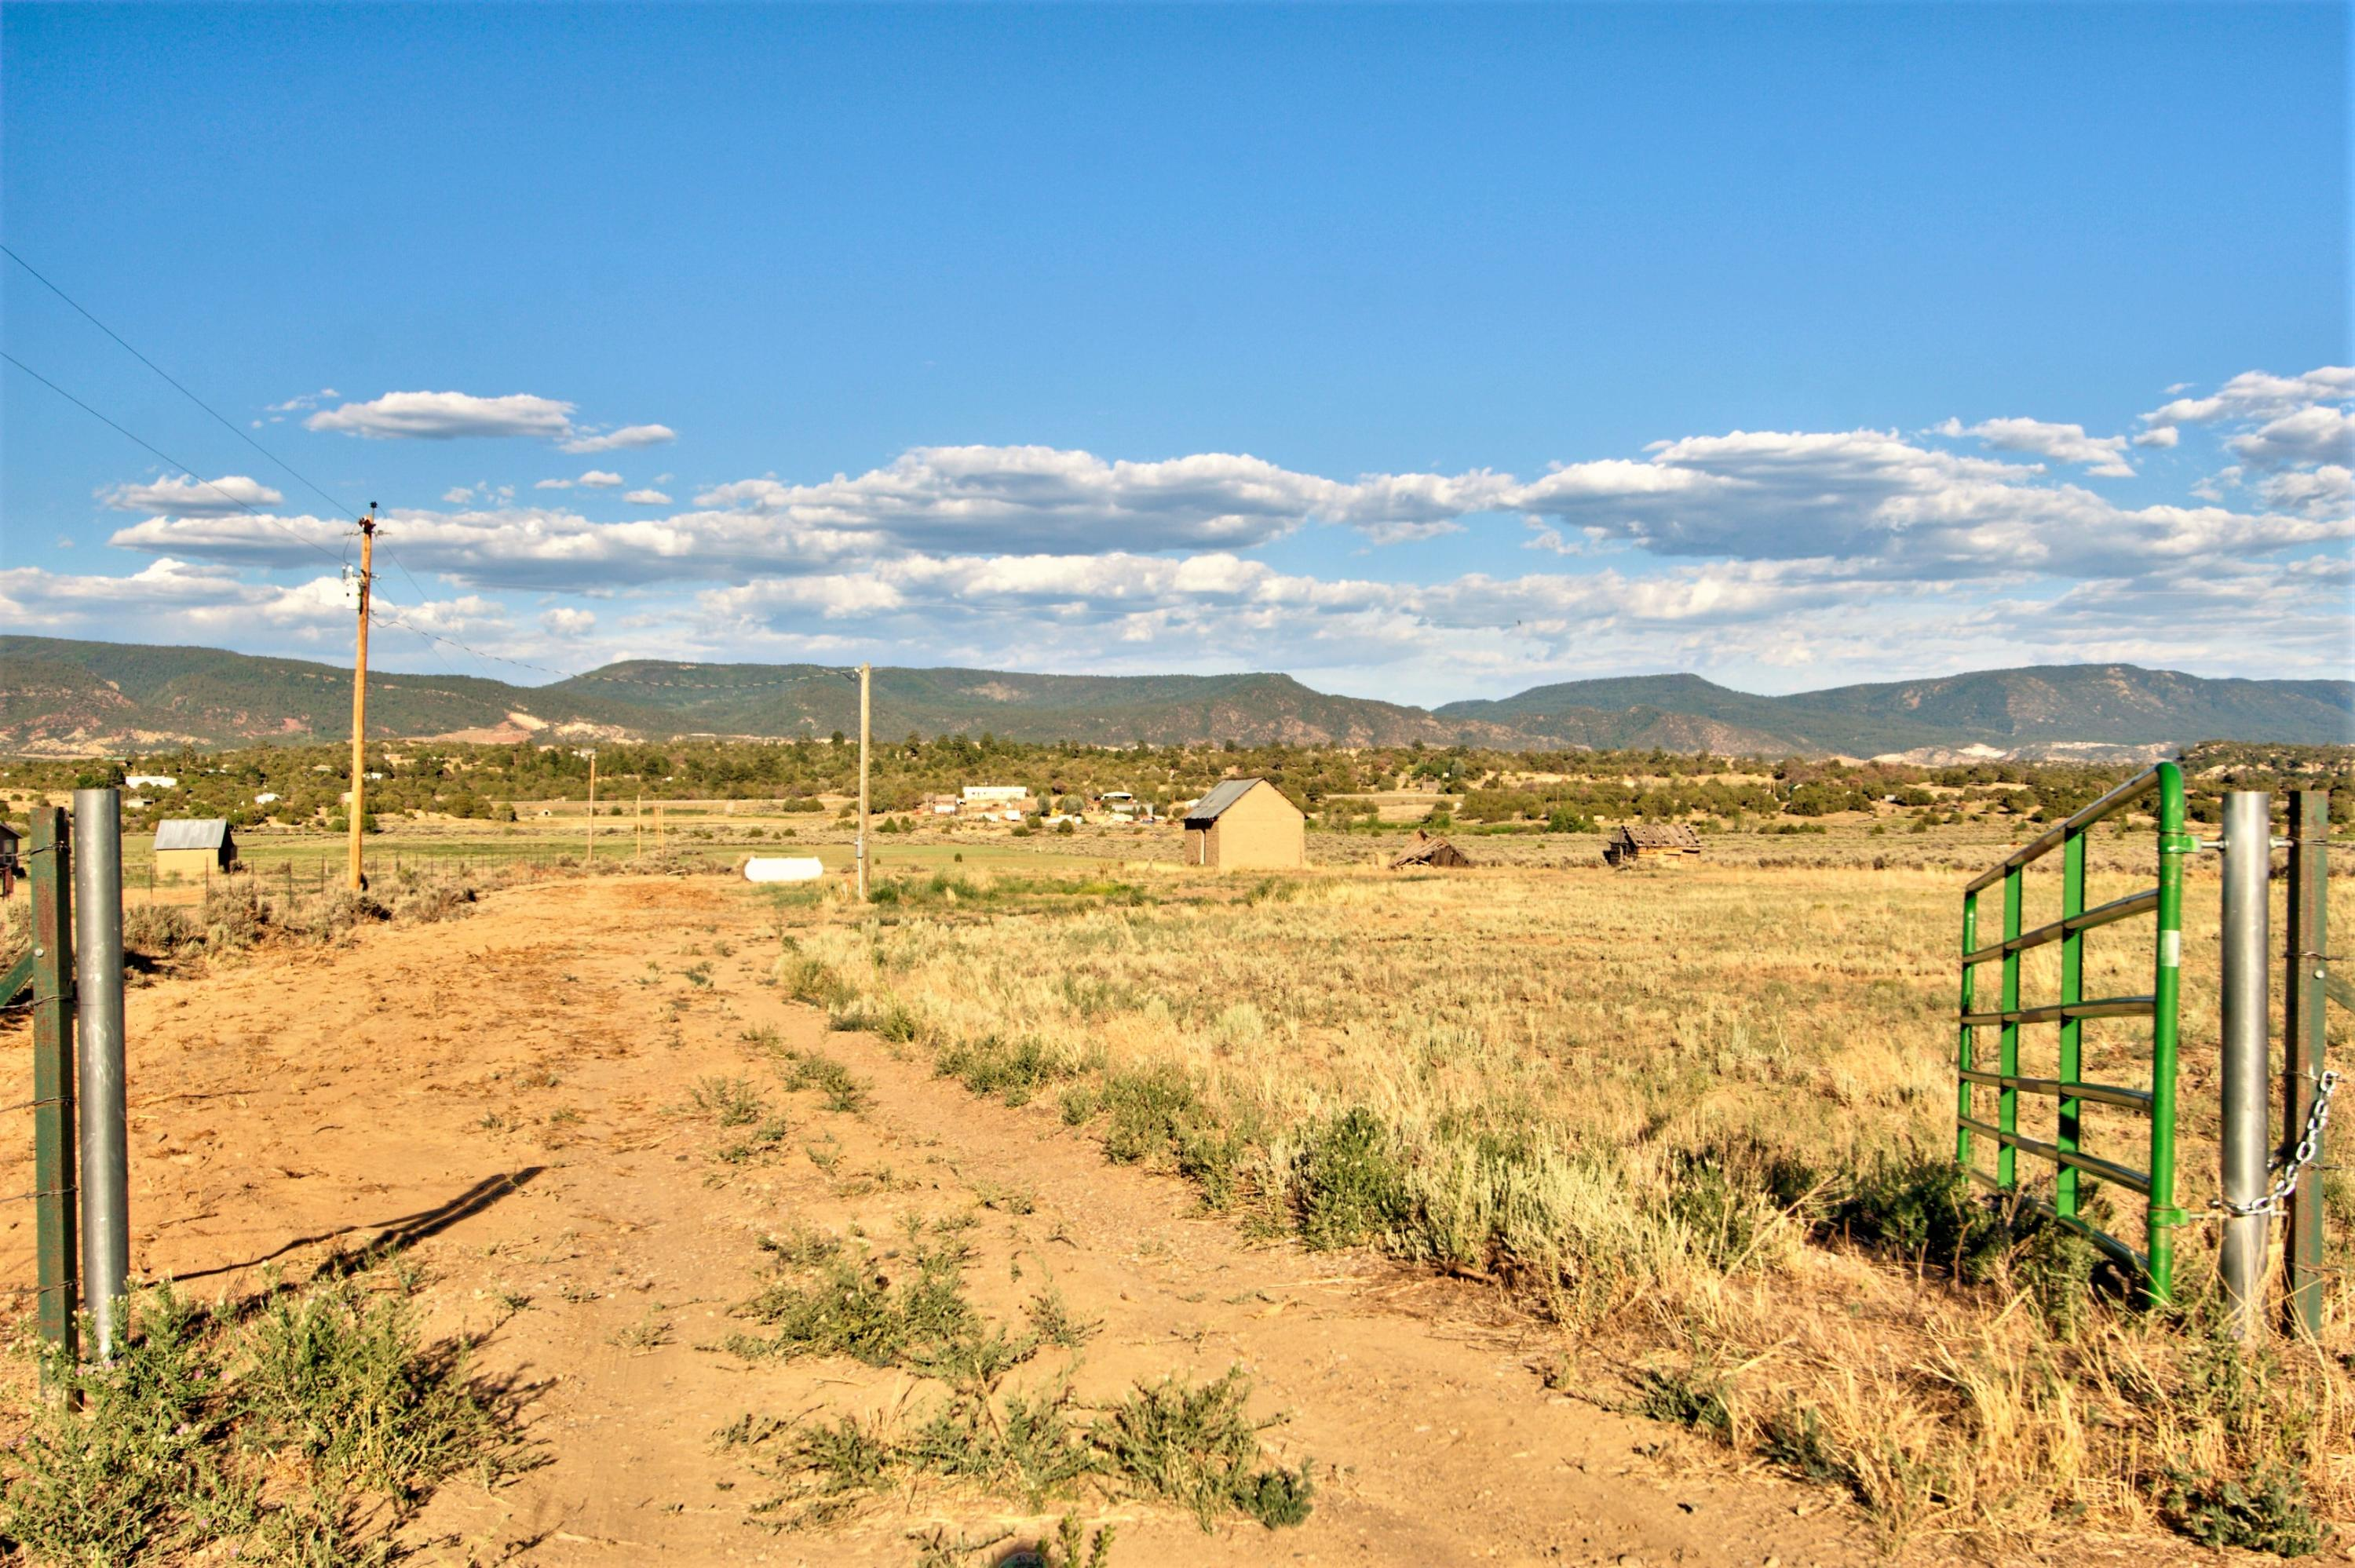 TBD NM HWY 197 Property Photo - Cuba, NM real estate listing